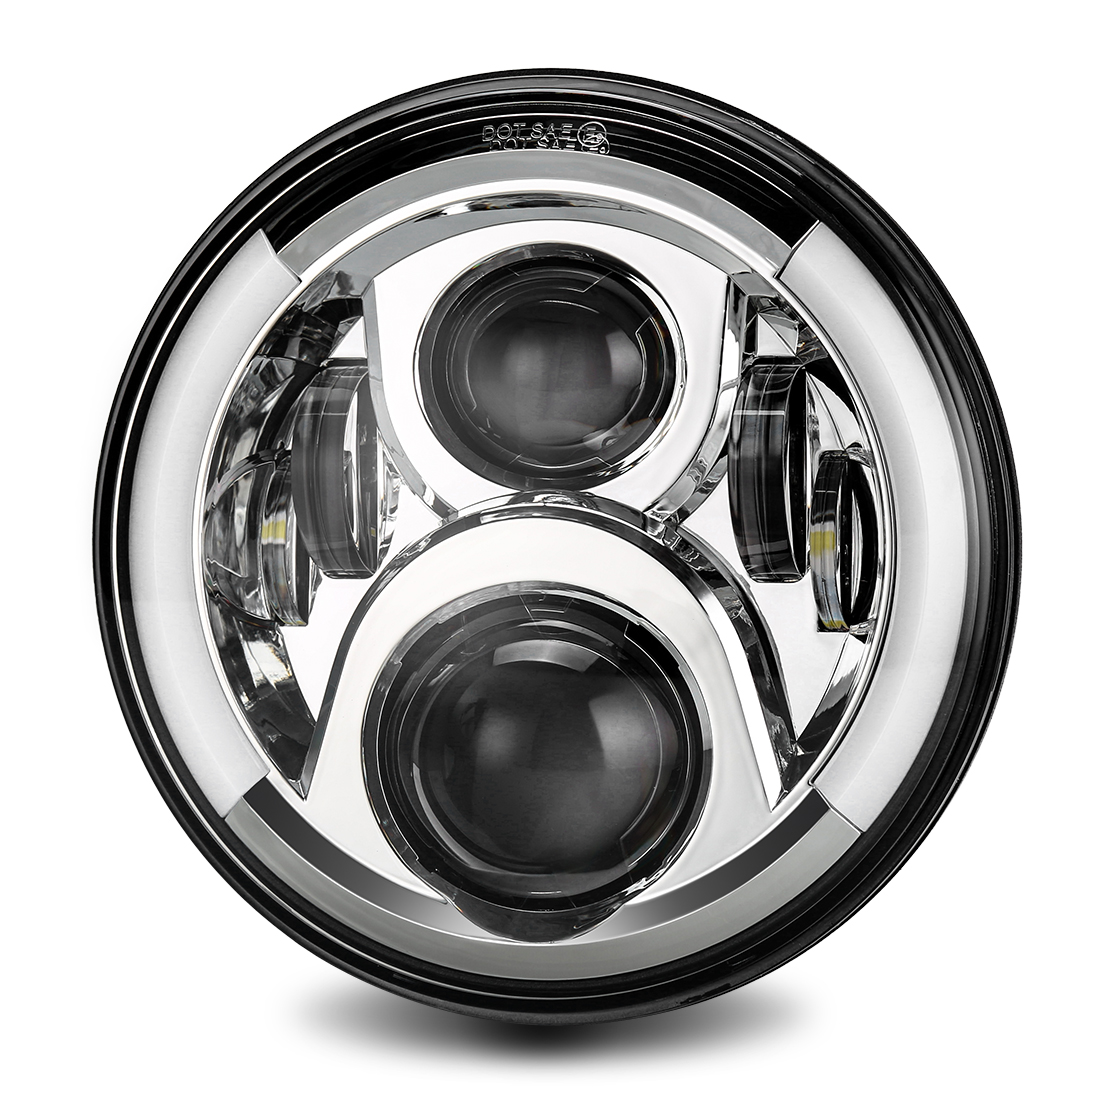 7 inch headlights for Jeep